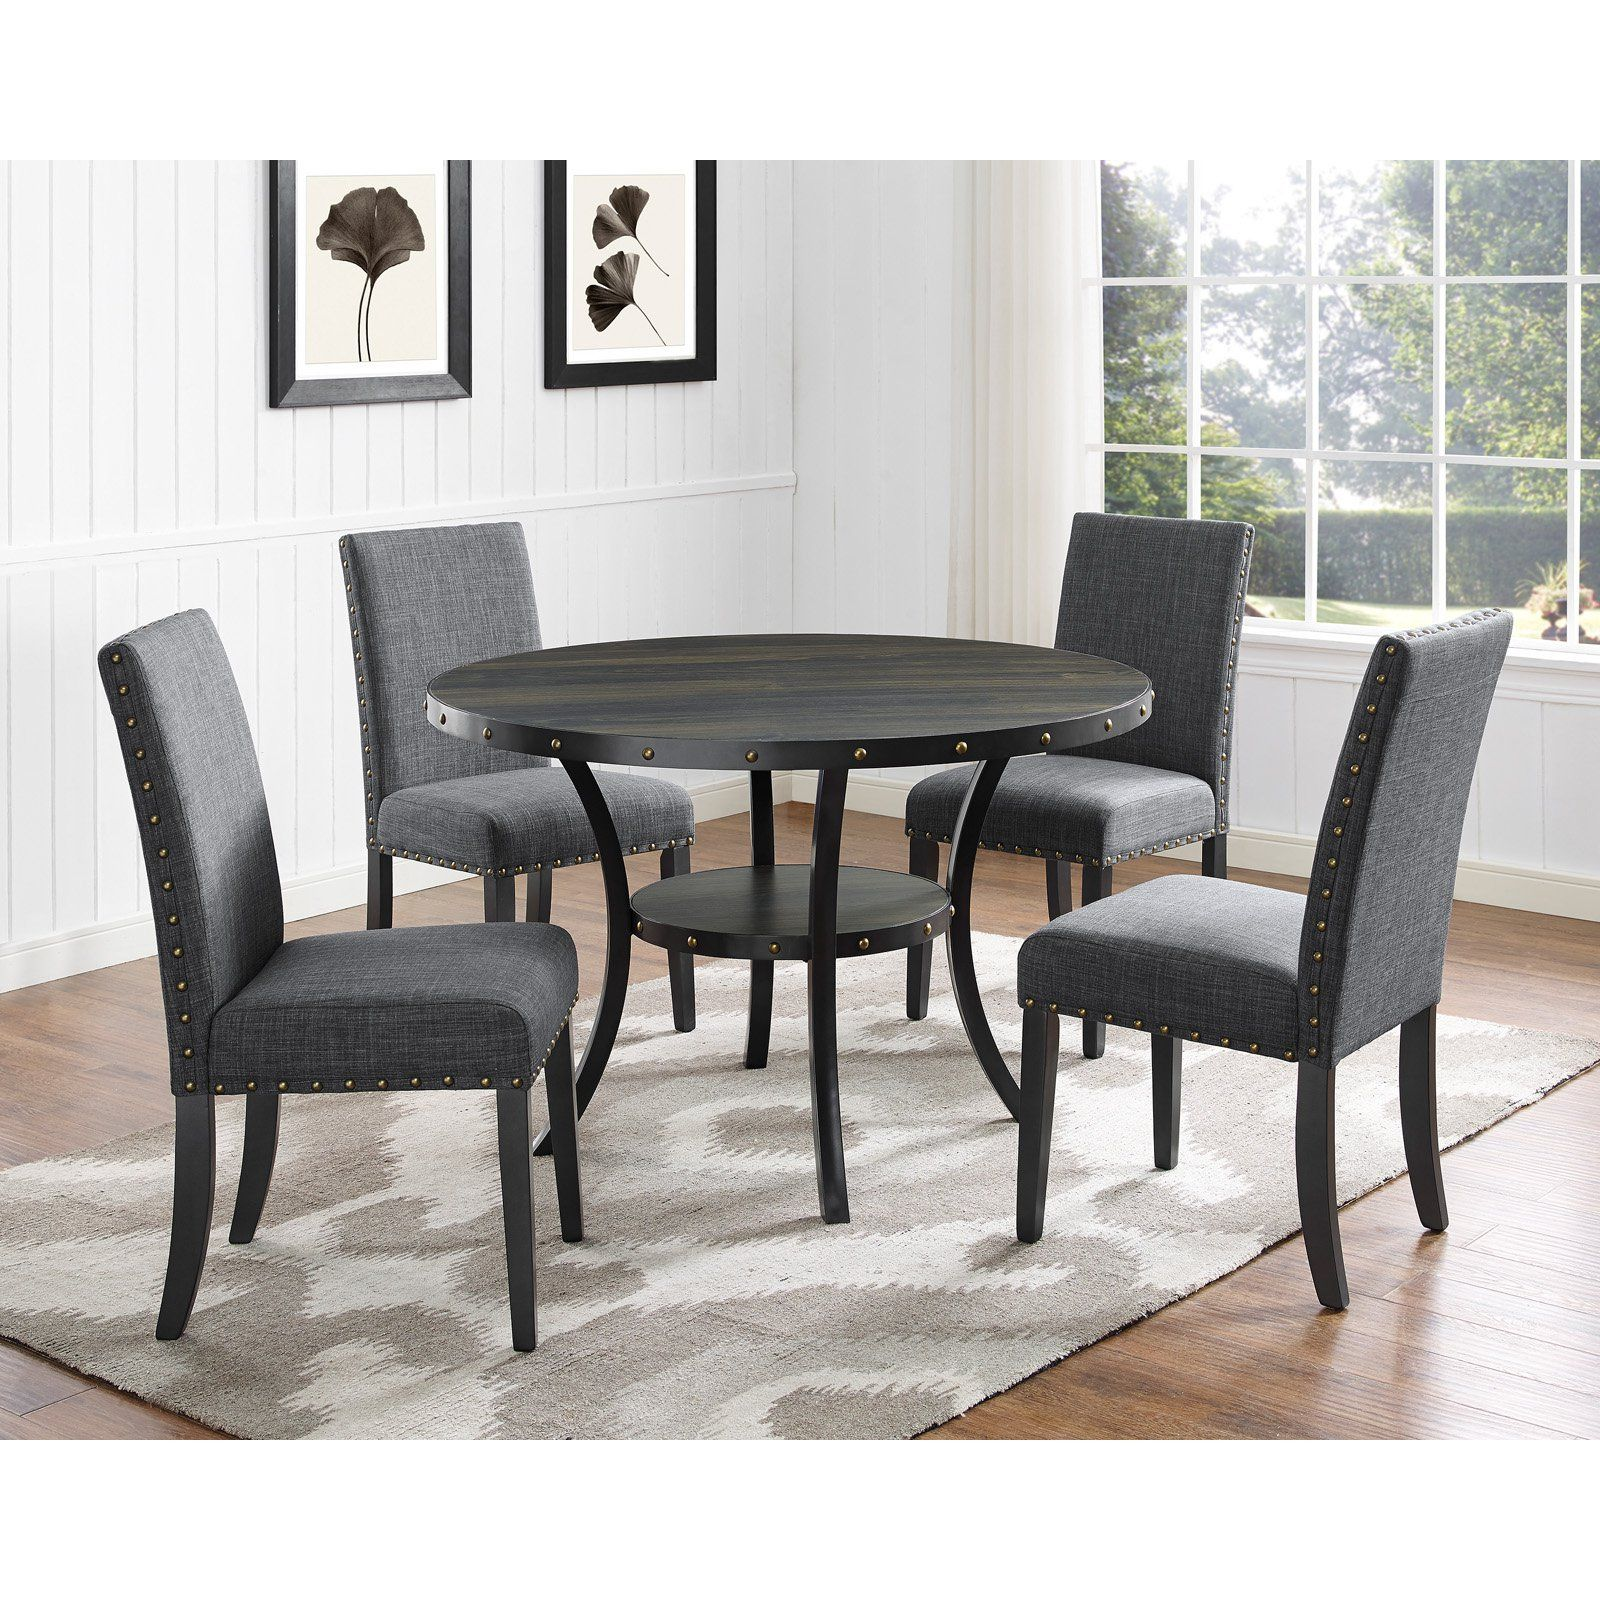 Roundhill Furniture Biony 5 Piece Wooden Dining Table Set Wooden